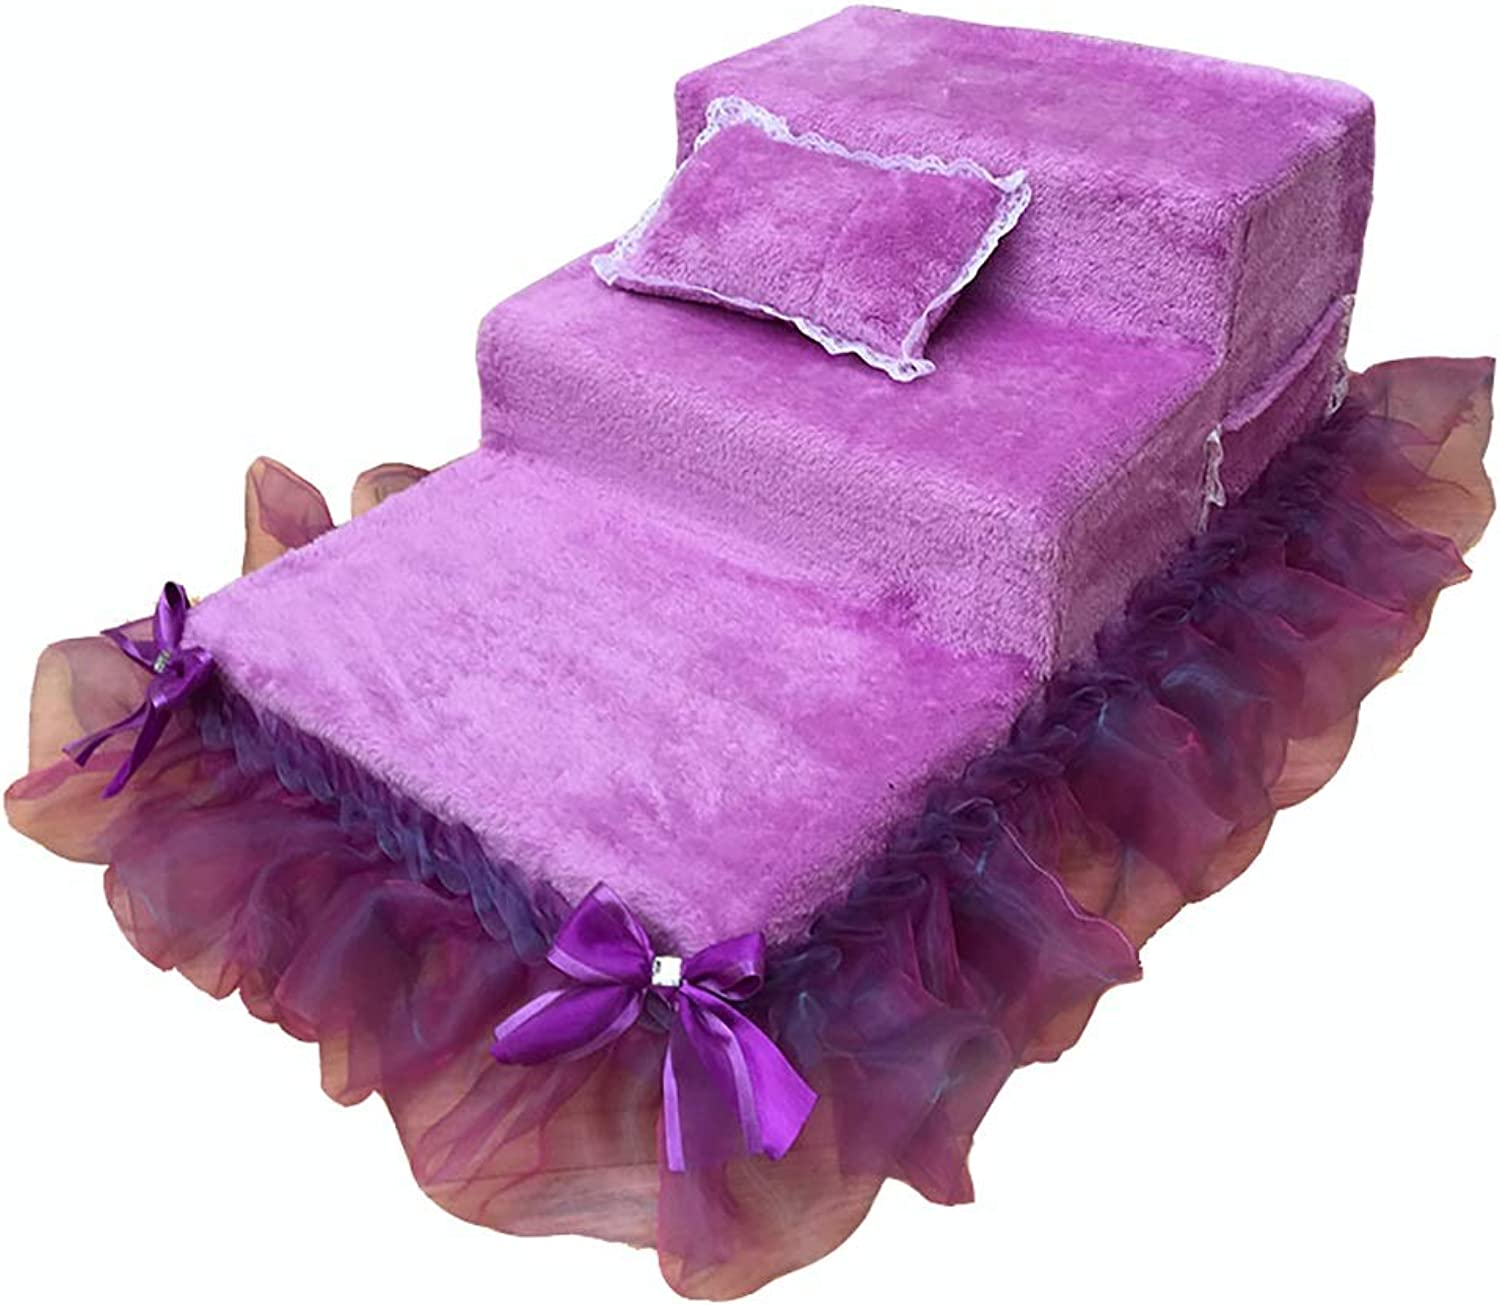 Pet Stairs Stairs & Steps Cat Dog 3 Steps for High Bed Sofa Chairs, Lightweight and Removable Cover  Purple